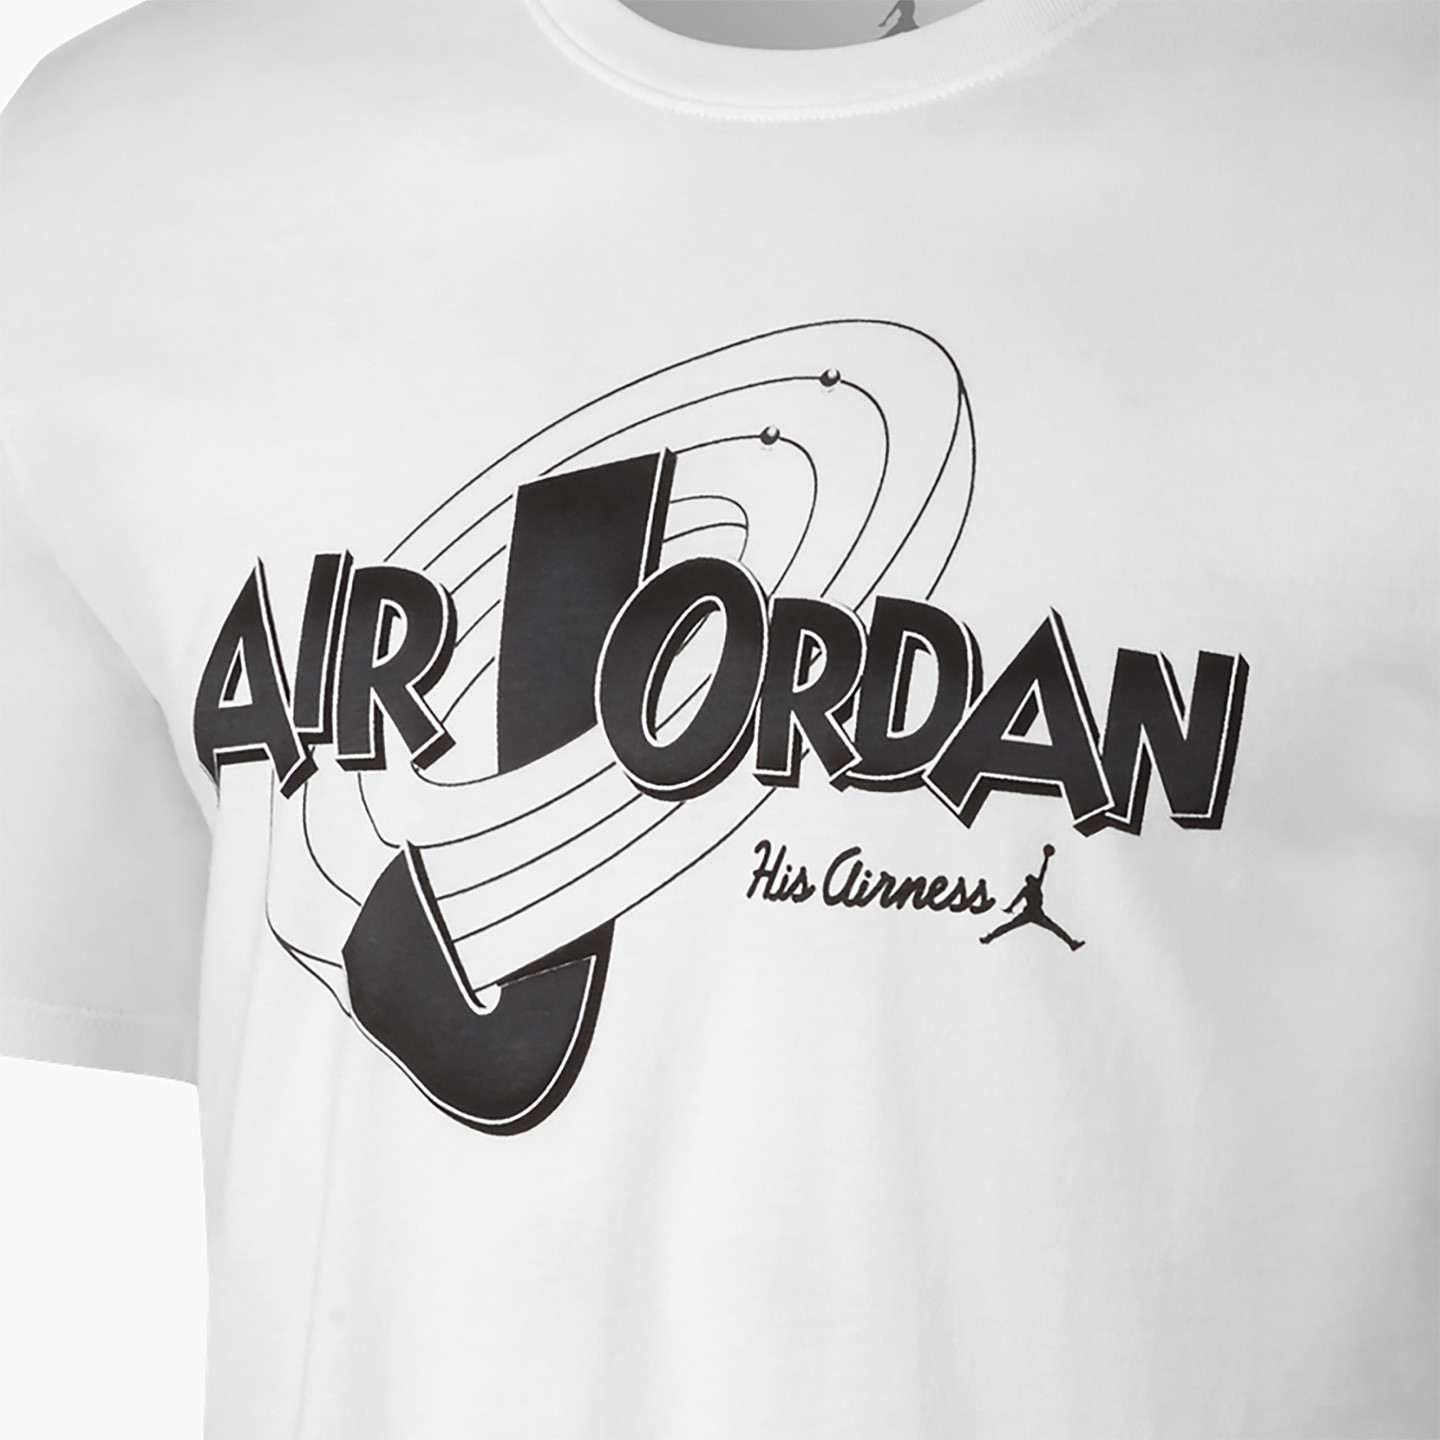 Jordan Air Jordan 11 T-Shirt White / Black 823718-100